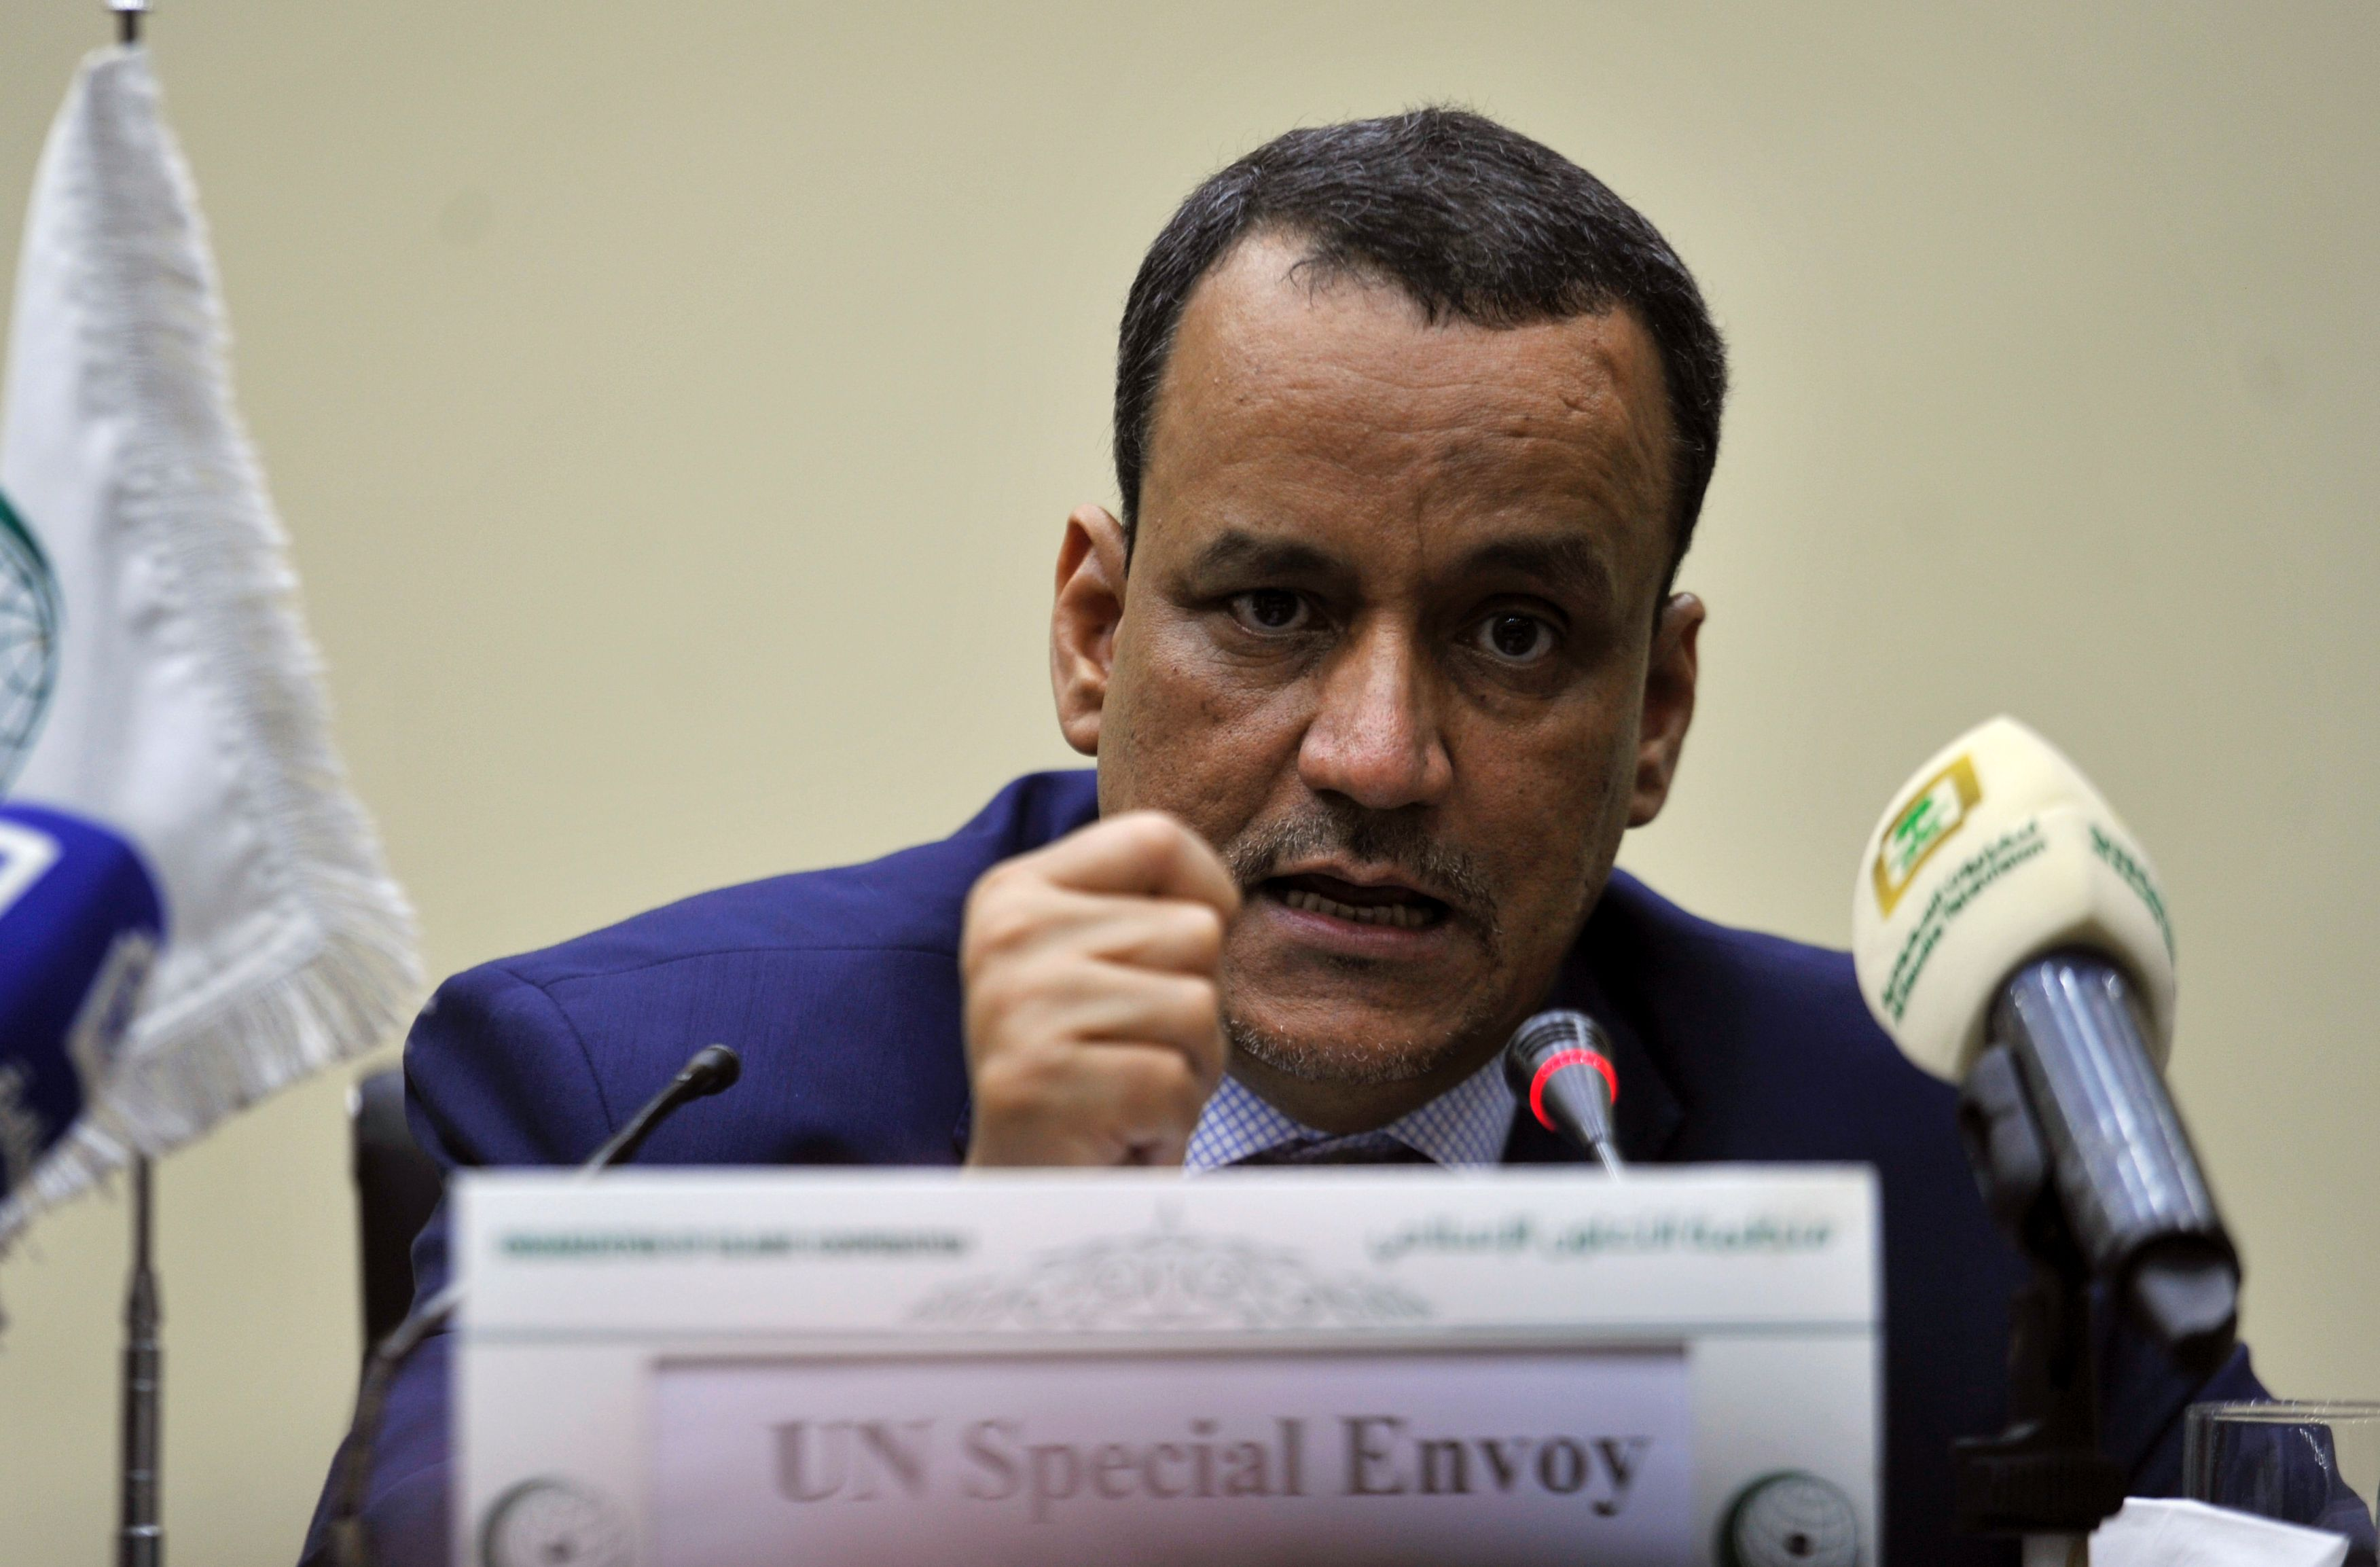 United Nations Special Envoy for Yemen Ismail Ould Cheikh Ahmed speaks during a press conference with the secretary general of the Organization of Islamic Cooperation (OIC) in Jeddah on August 8, 2016.